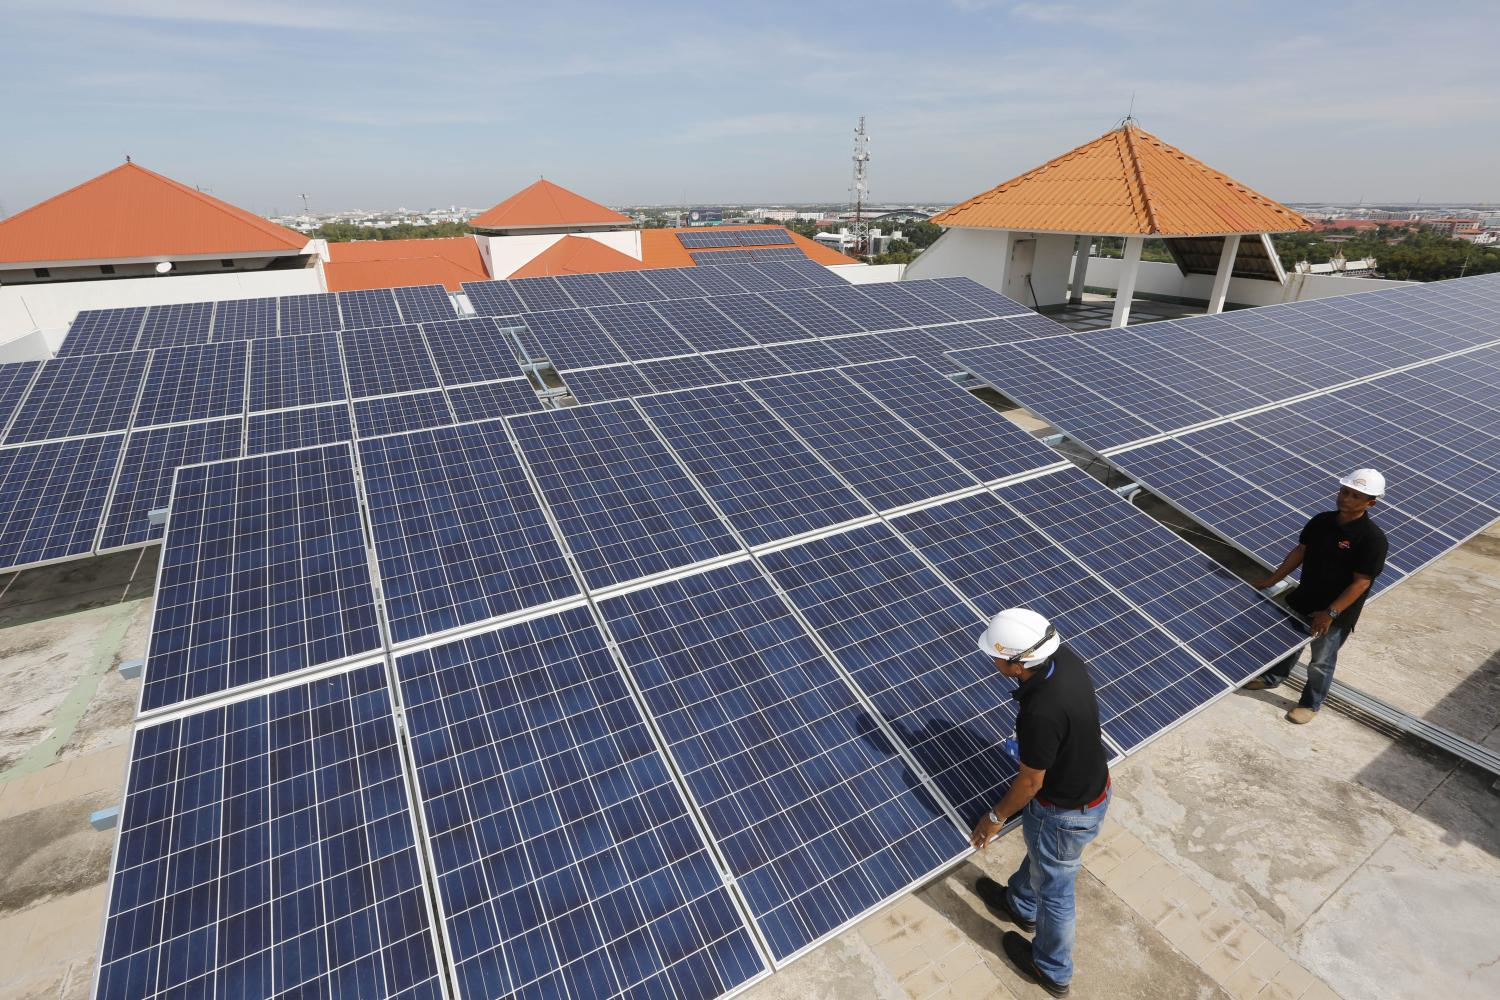 Grid or no grid, firms keen on renewables